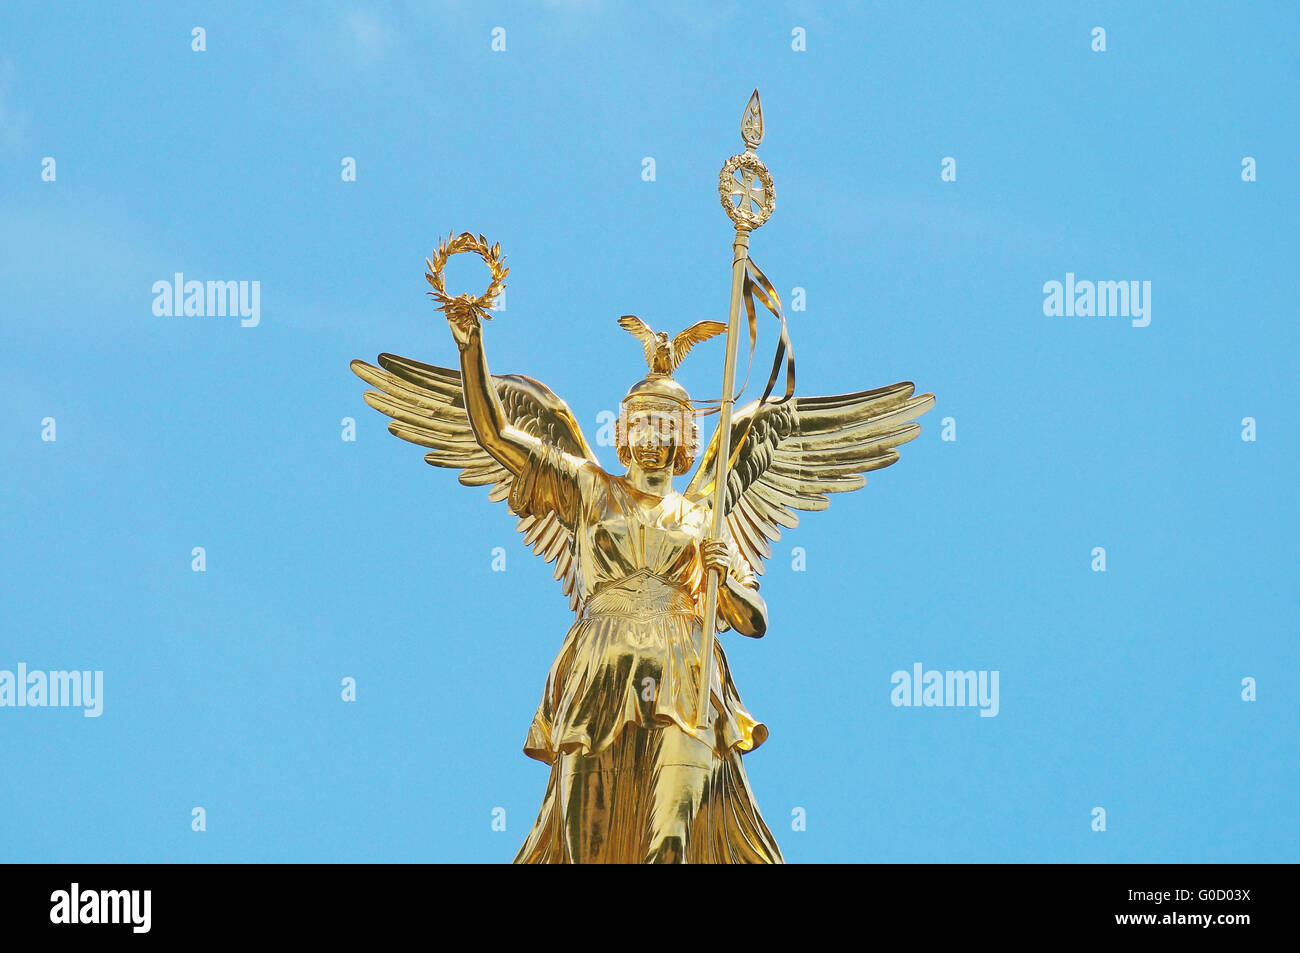 Victory Column Germany Berlin - Stock Image